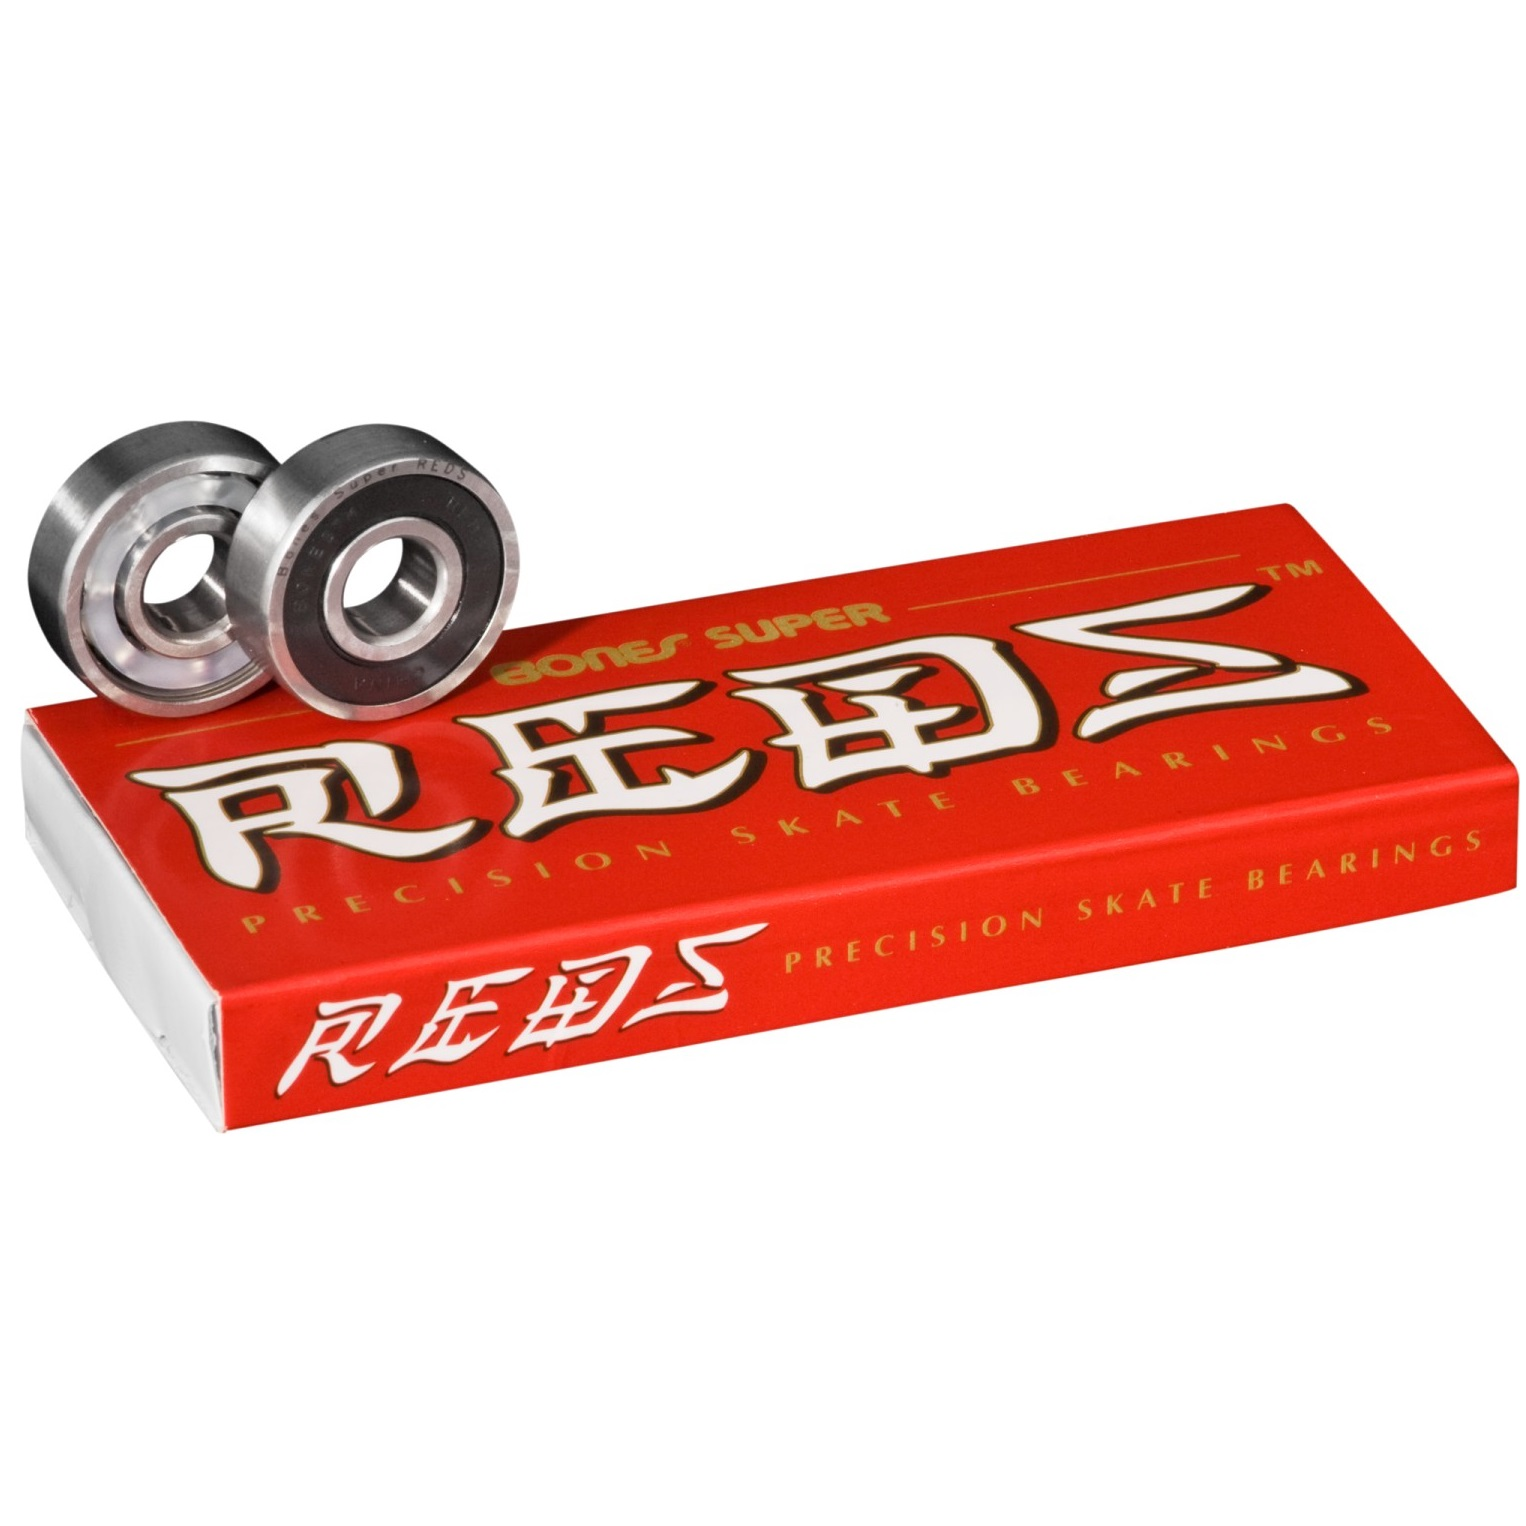 Bones Bearings Ložiska Bones Super Reds 8 ks